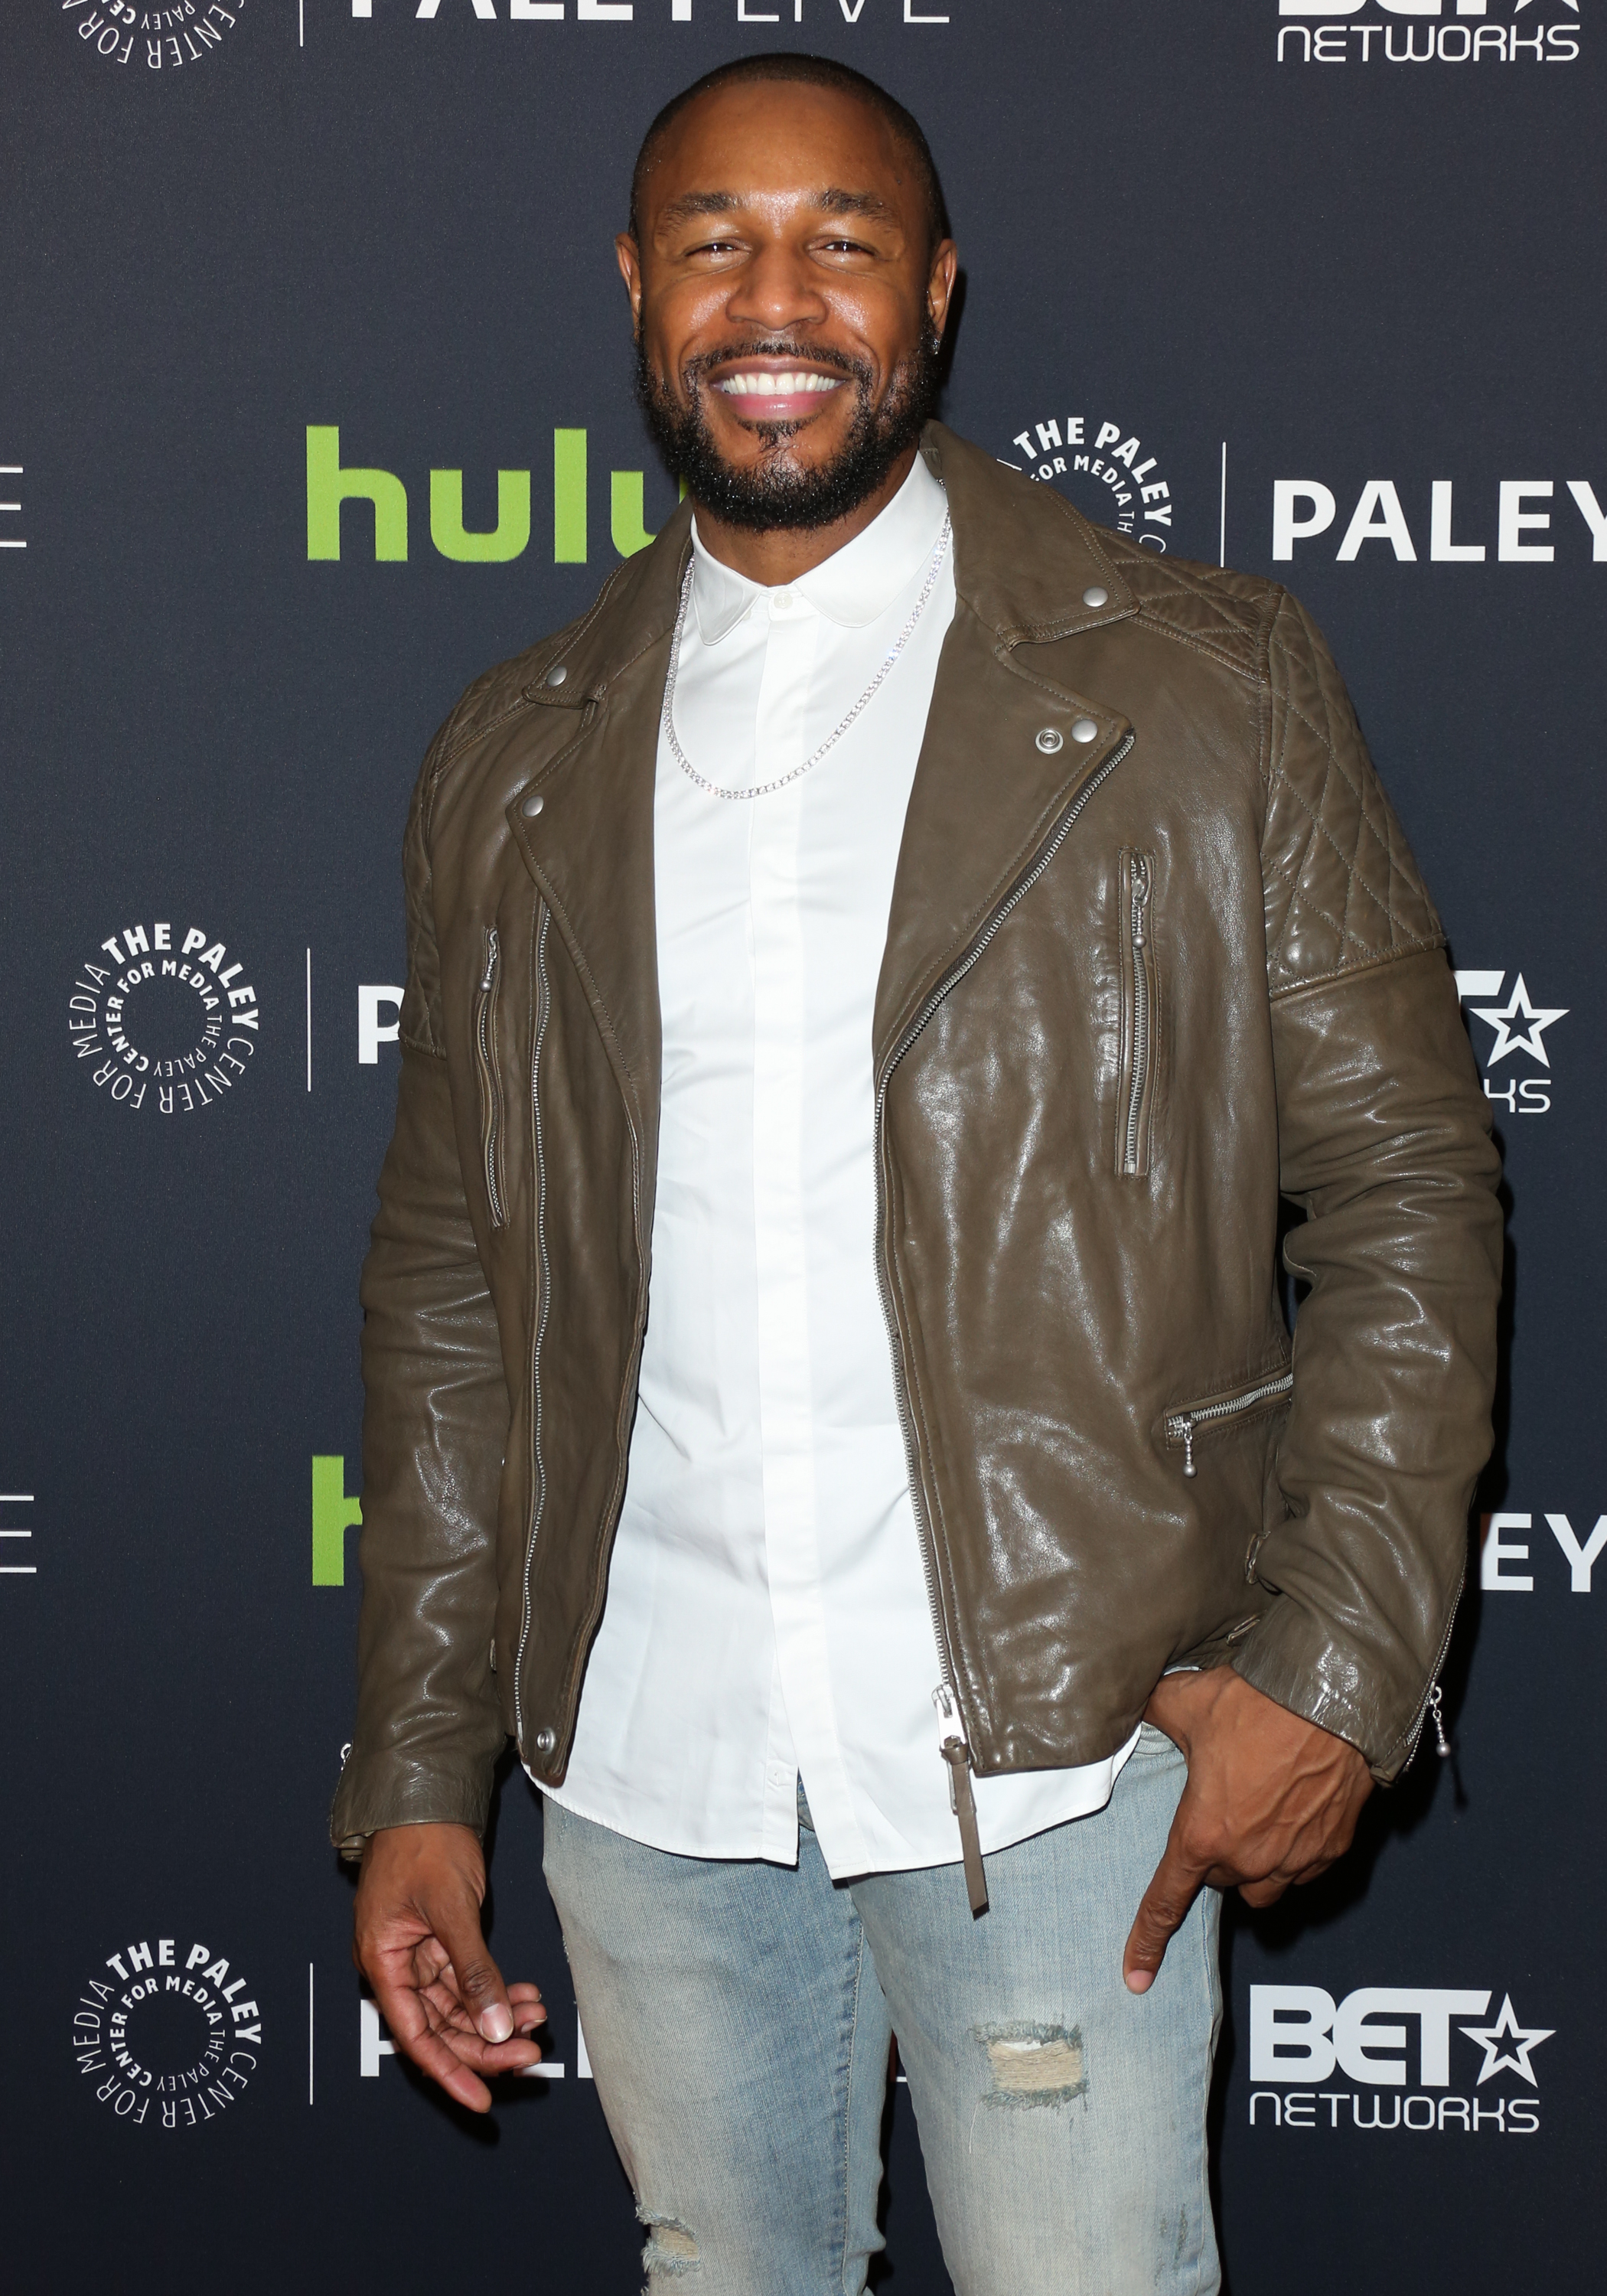 Paley Center For Media Presents Premiere Of BET's 'The New Edition Story' - Arrivals